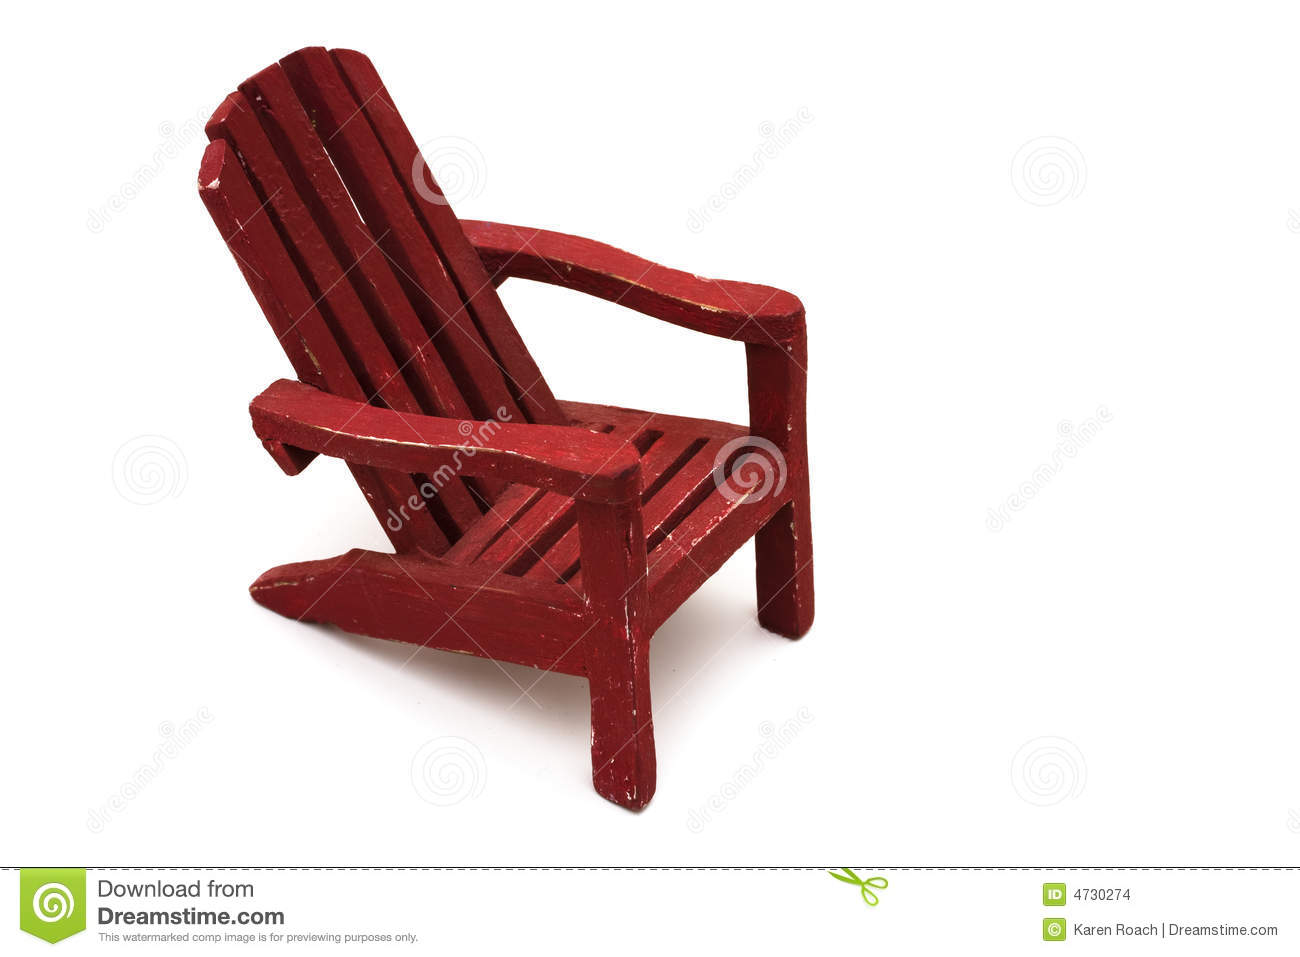 14 Adirondack Chair Vector Images   Adirondack Chair Clip .